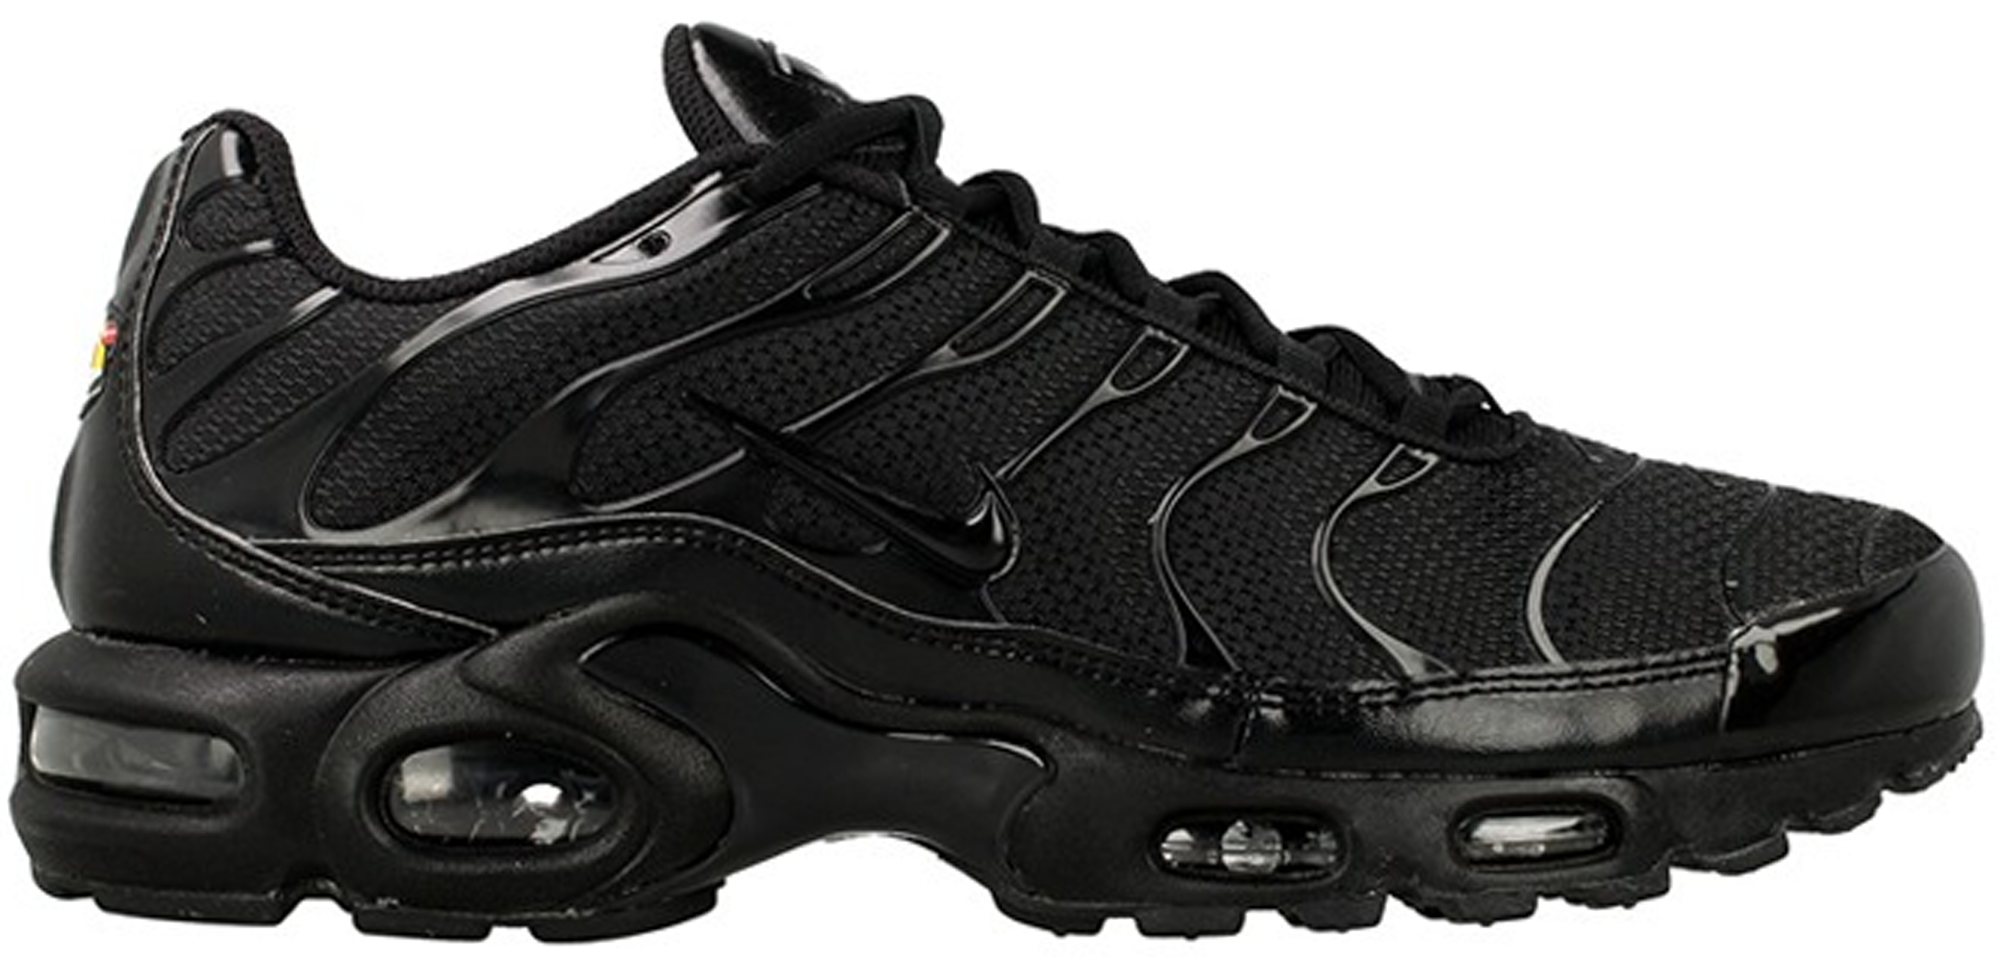 reputable site 85956 b14fc ... low cost air max plus triple black 604133 050 14871 87e4a